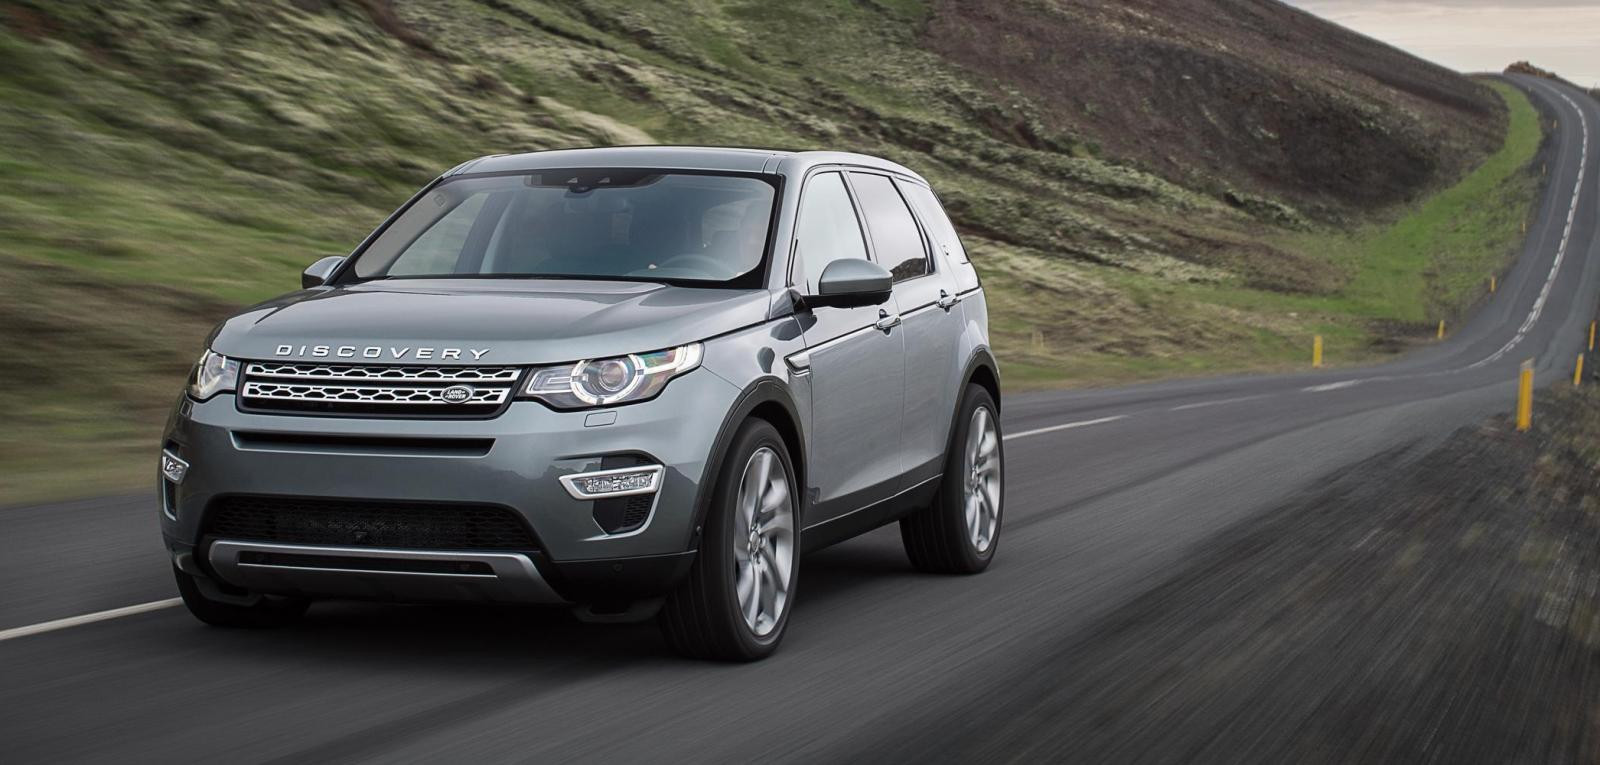 Range Rover Discovery Sport.